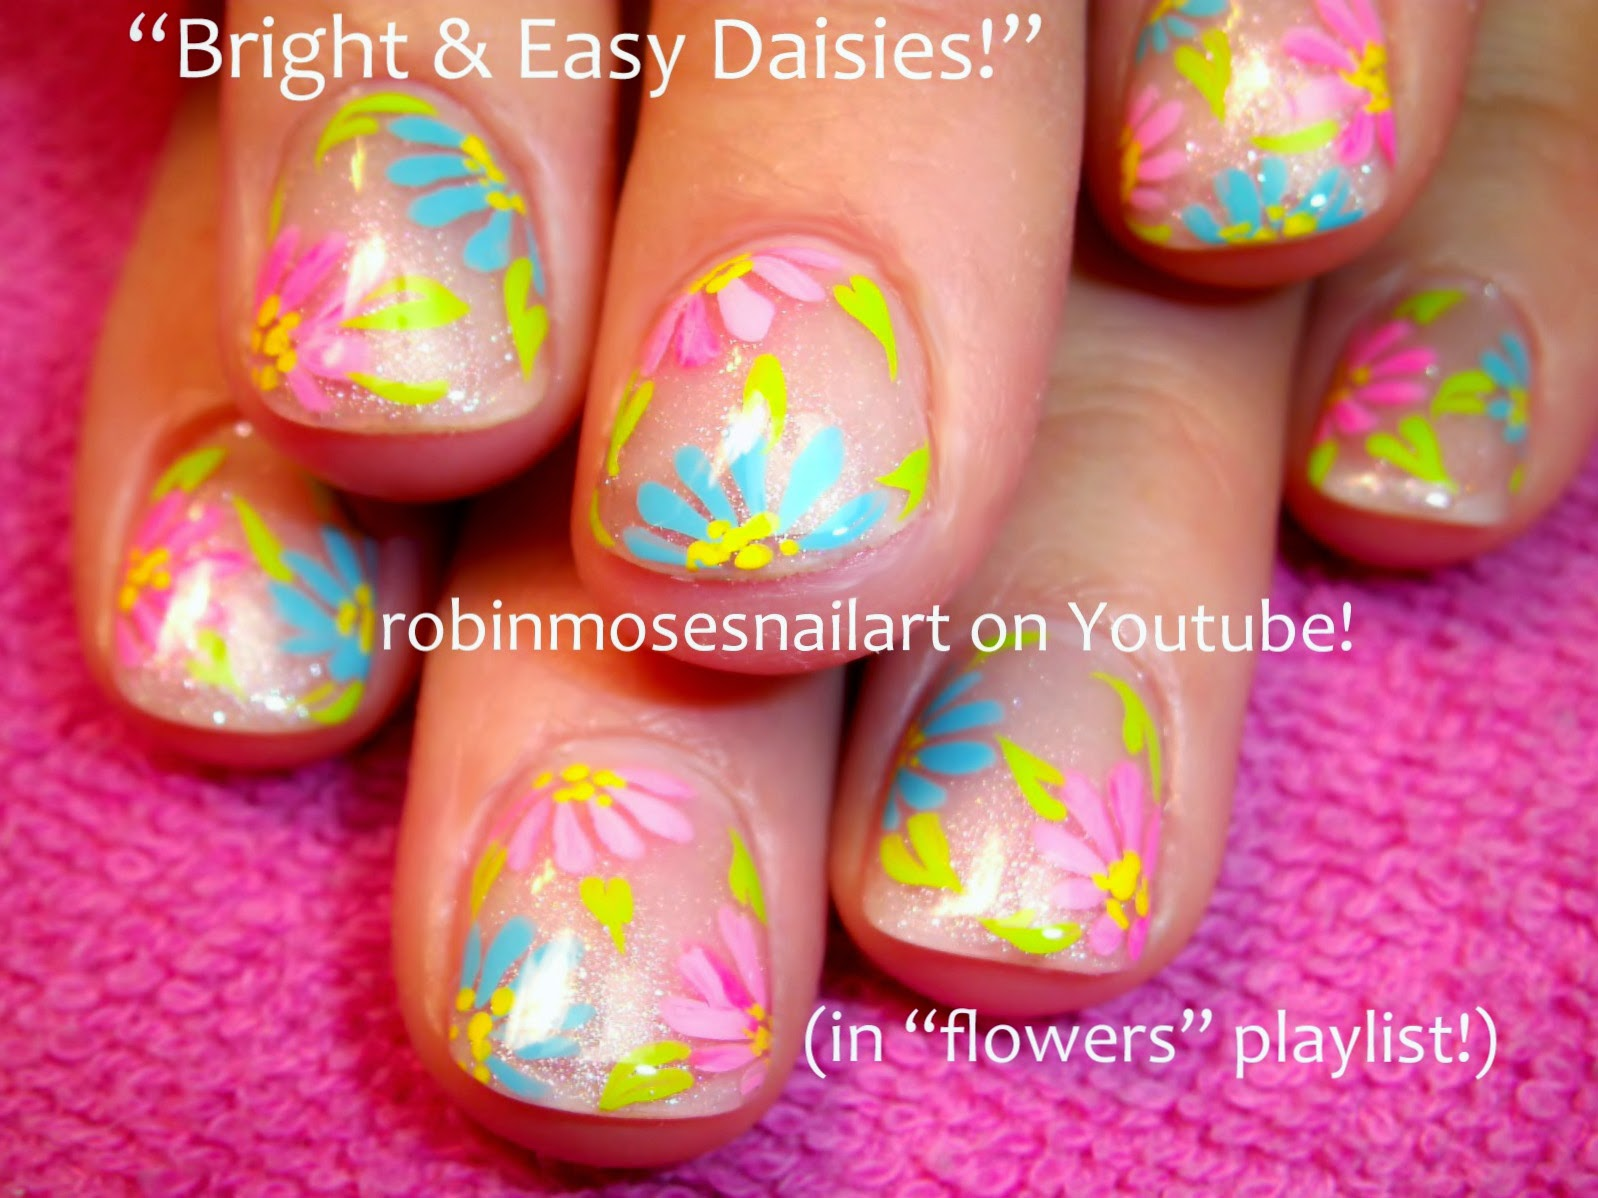 Do it yourself nail designs for short nails do it yourself nail designs for short nails 16 interesting nail tutorials for short nails solutioingenieria Choice Image